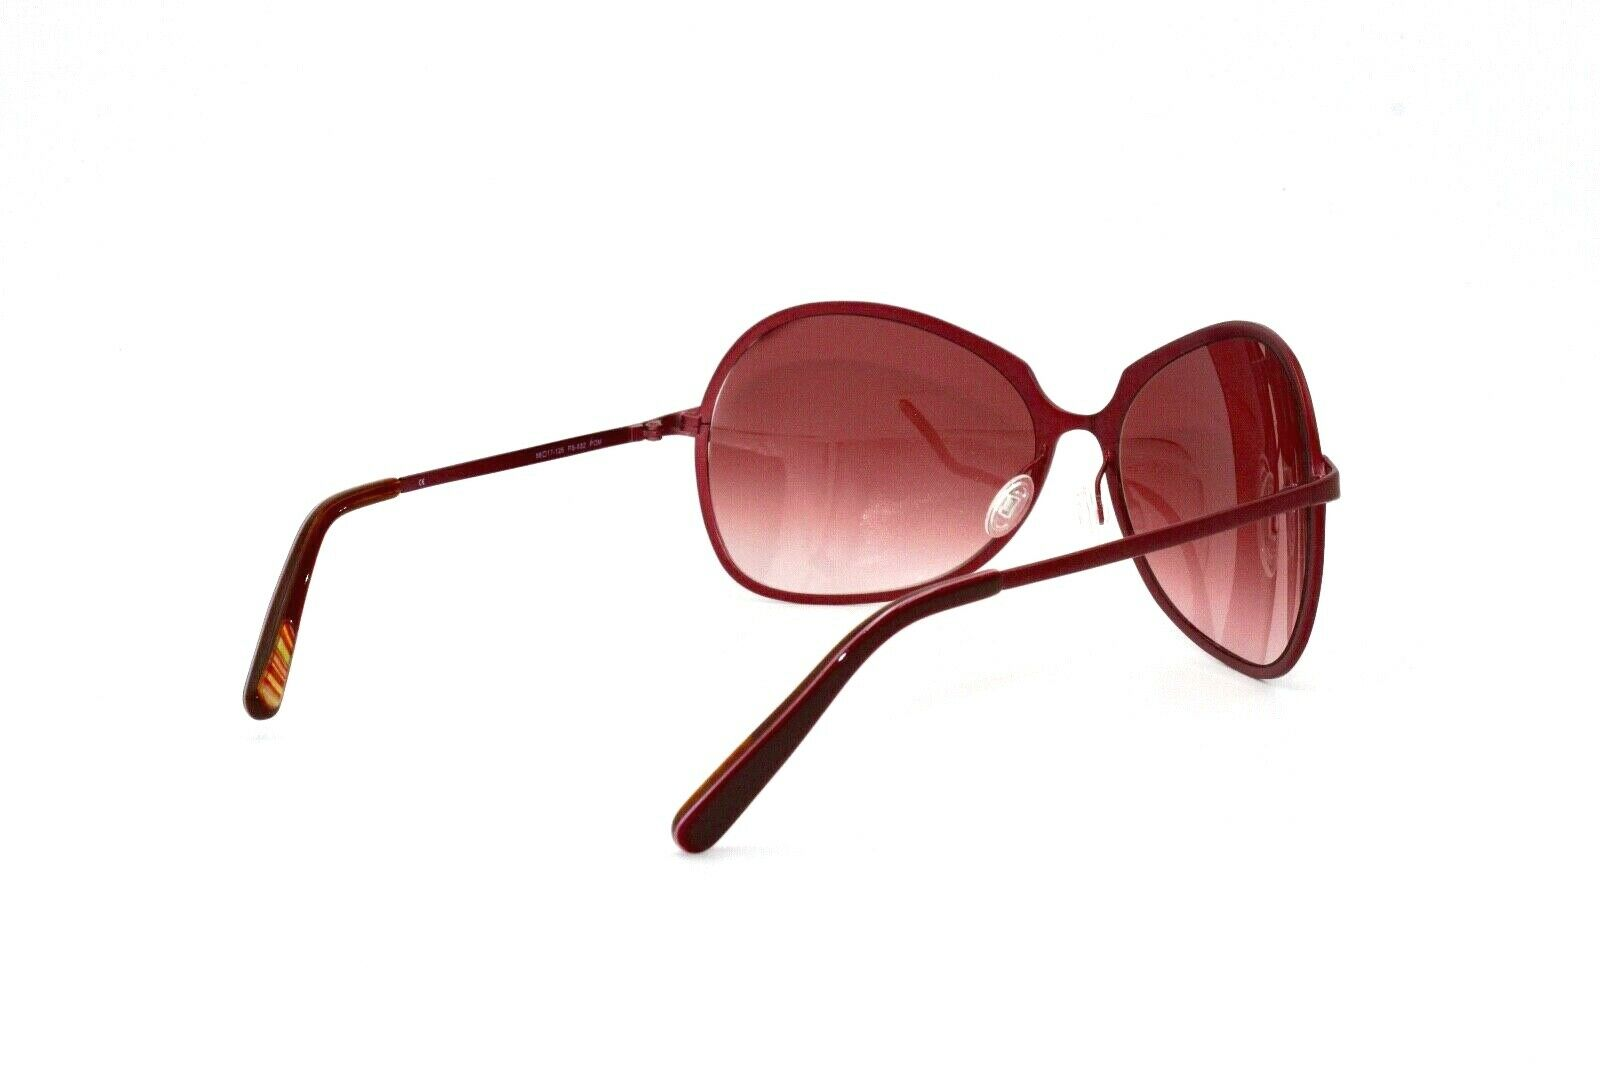 Paul Smith Sunglasses 66 17-125 PS-832 POM Made in Japan - Mydesigneroptic